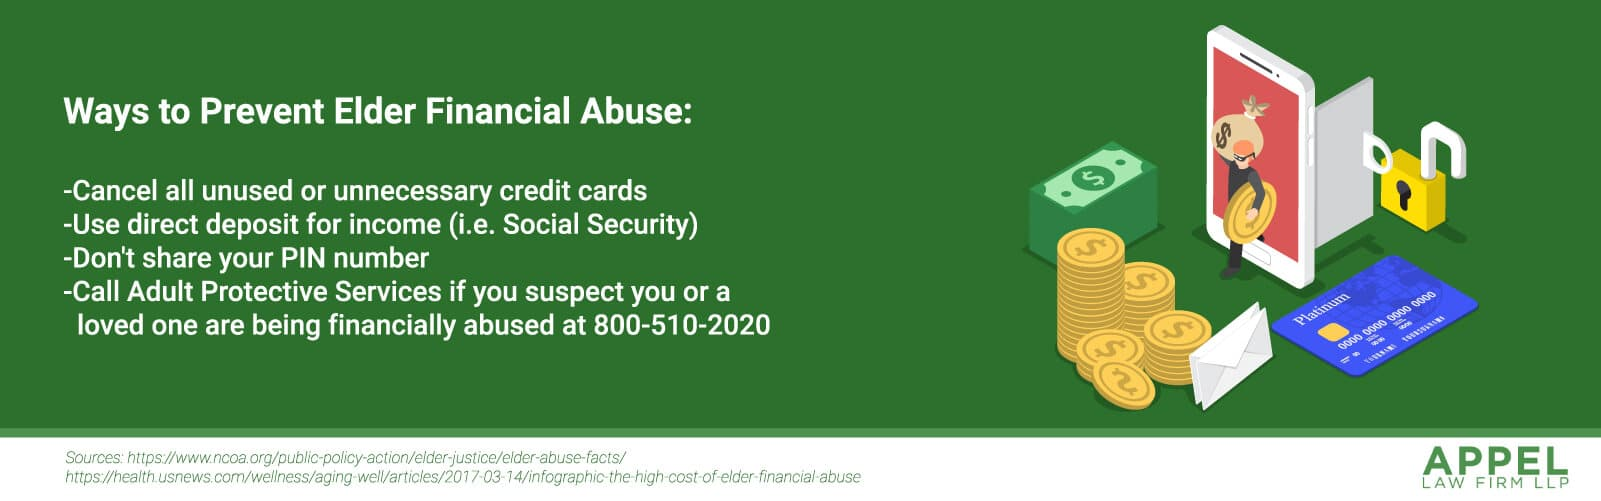 prevent-financial-abuse